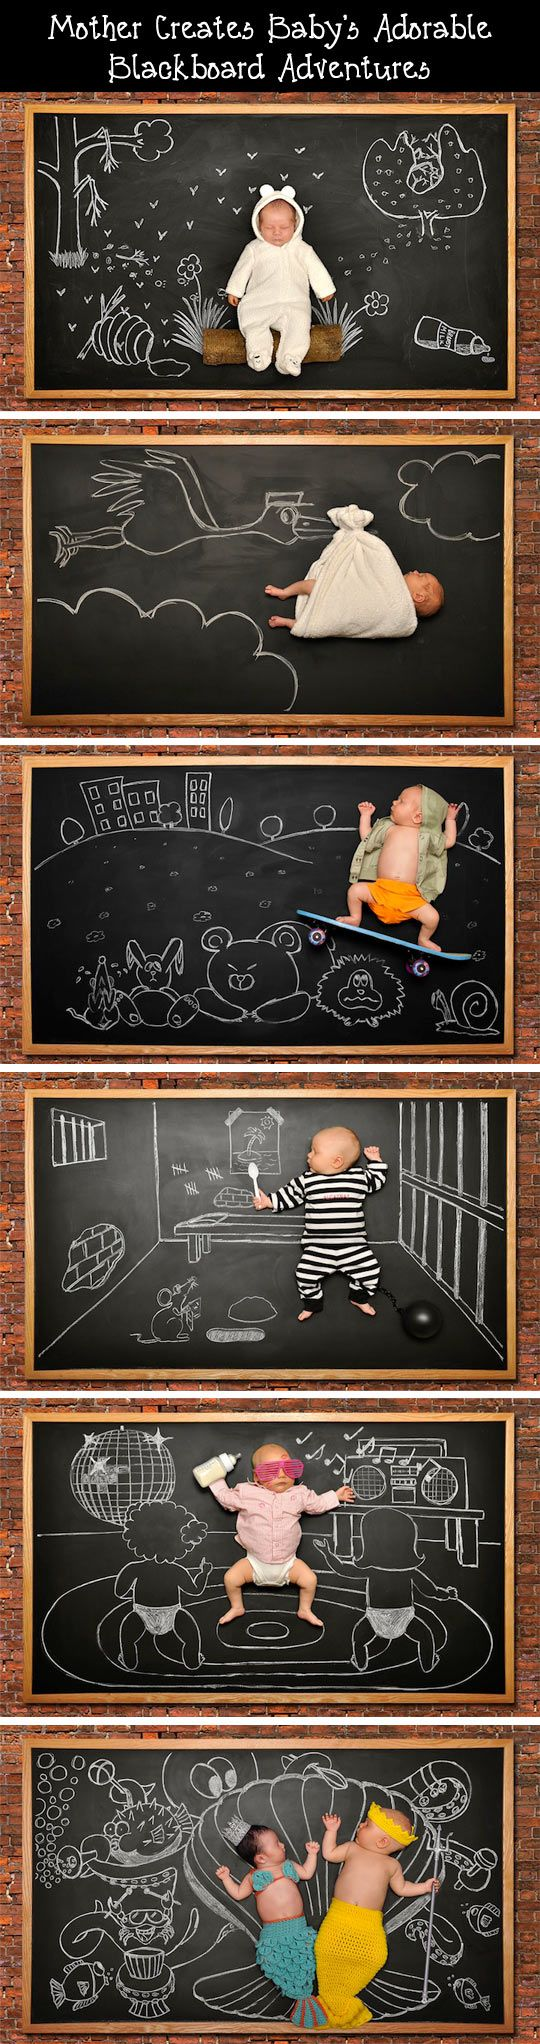 Baby's Blackboard Adventures.